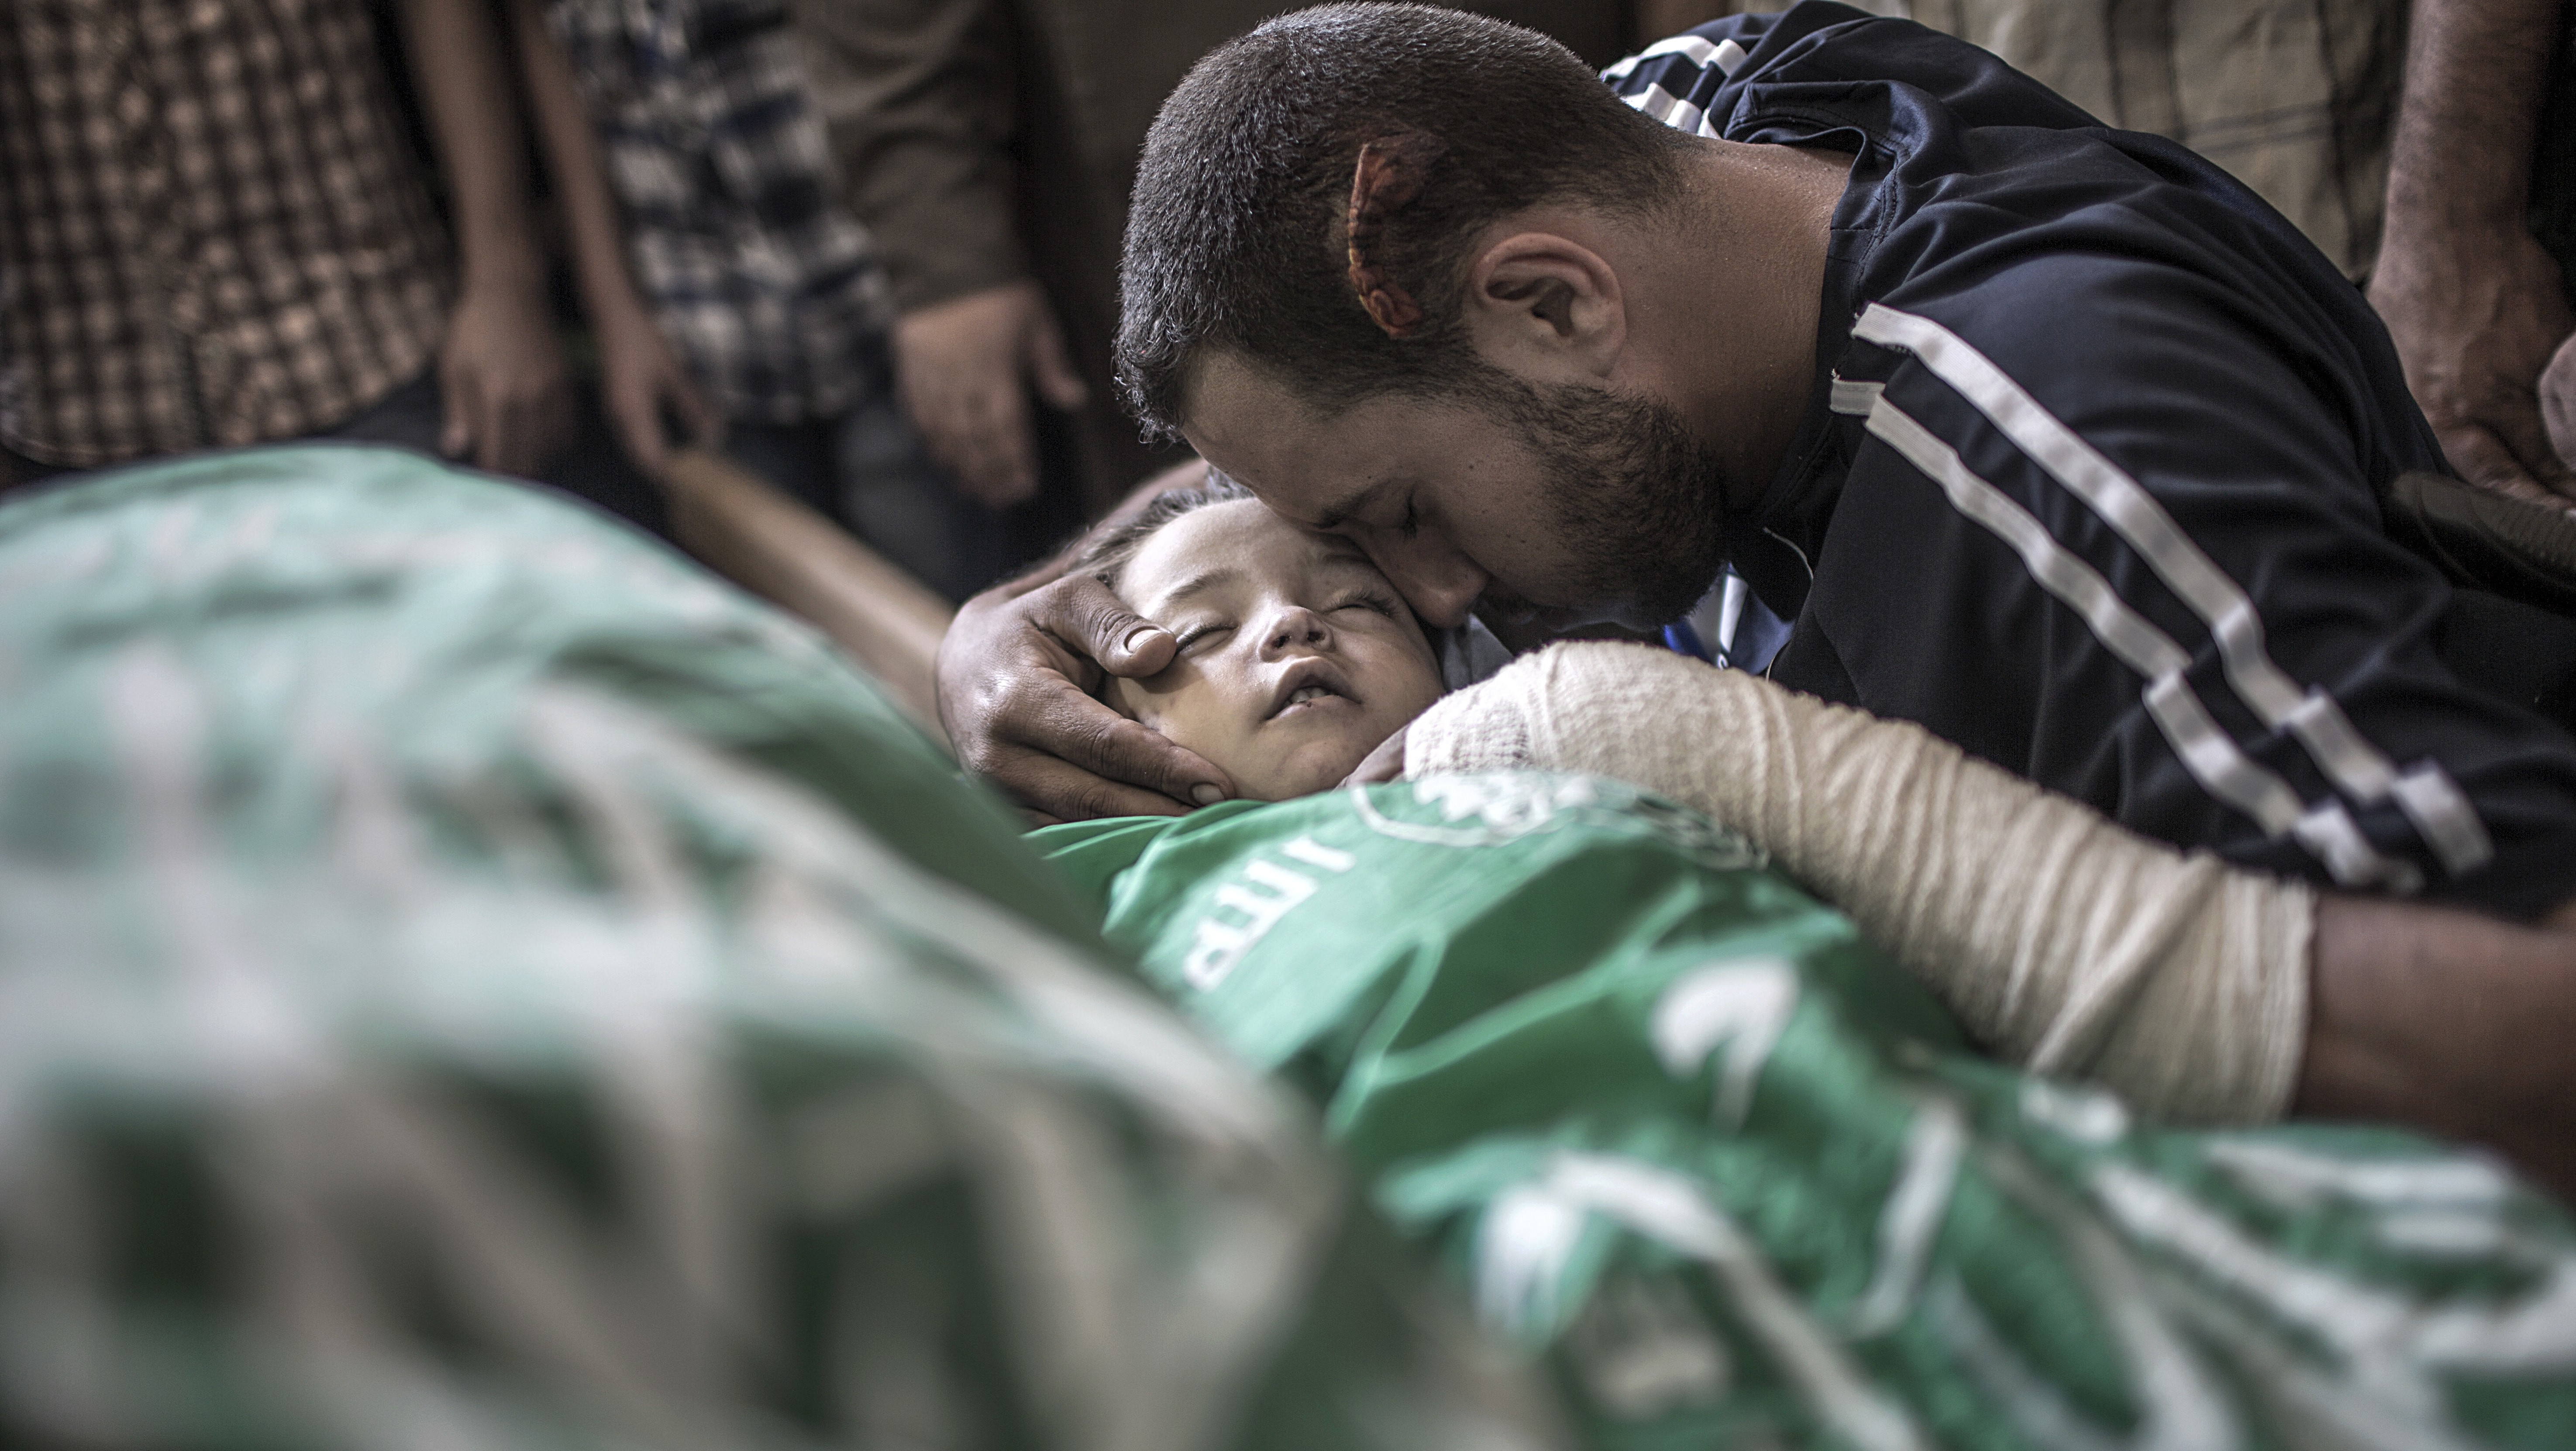 Israeli Airstrikes in the Gaza Strip Kill Pregnant Woman and Her Toddler